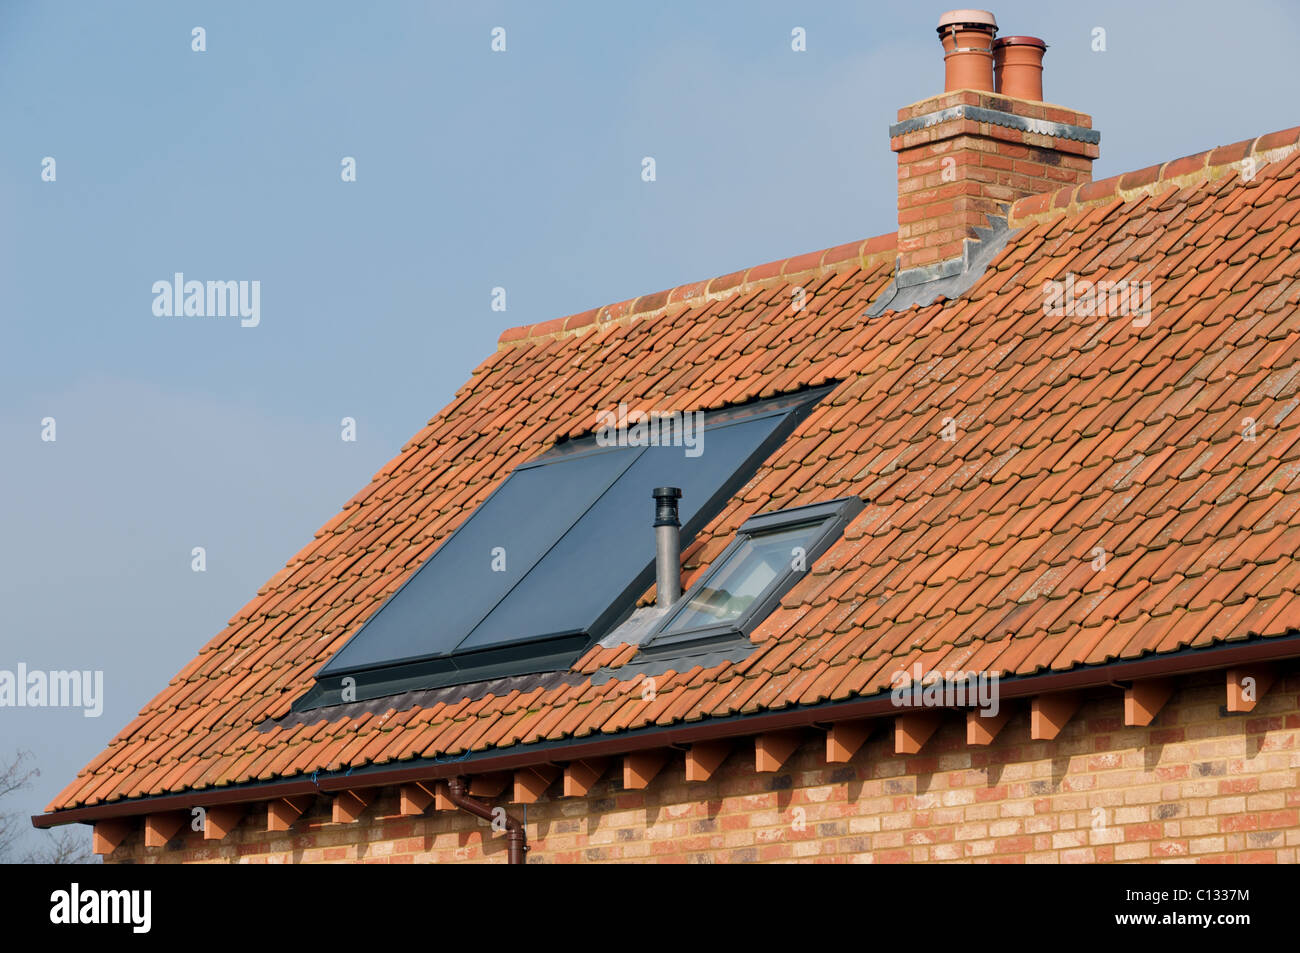 Integrated thermal solar panel on the roof of a newly built house to produce hot water - Stock Image